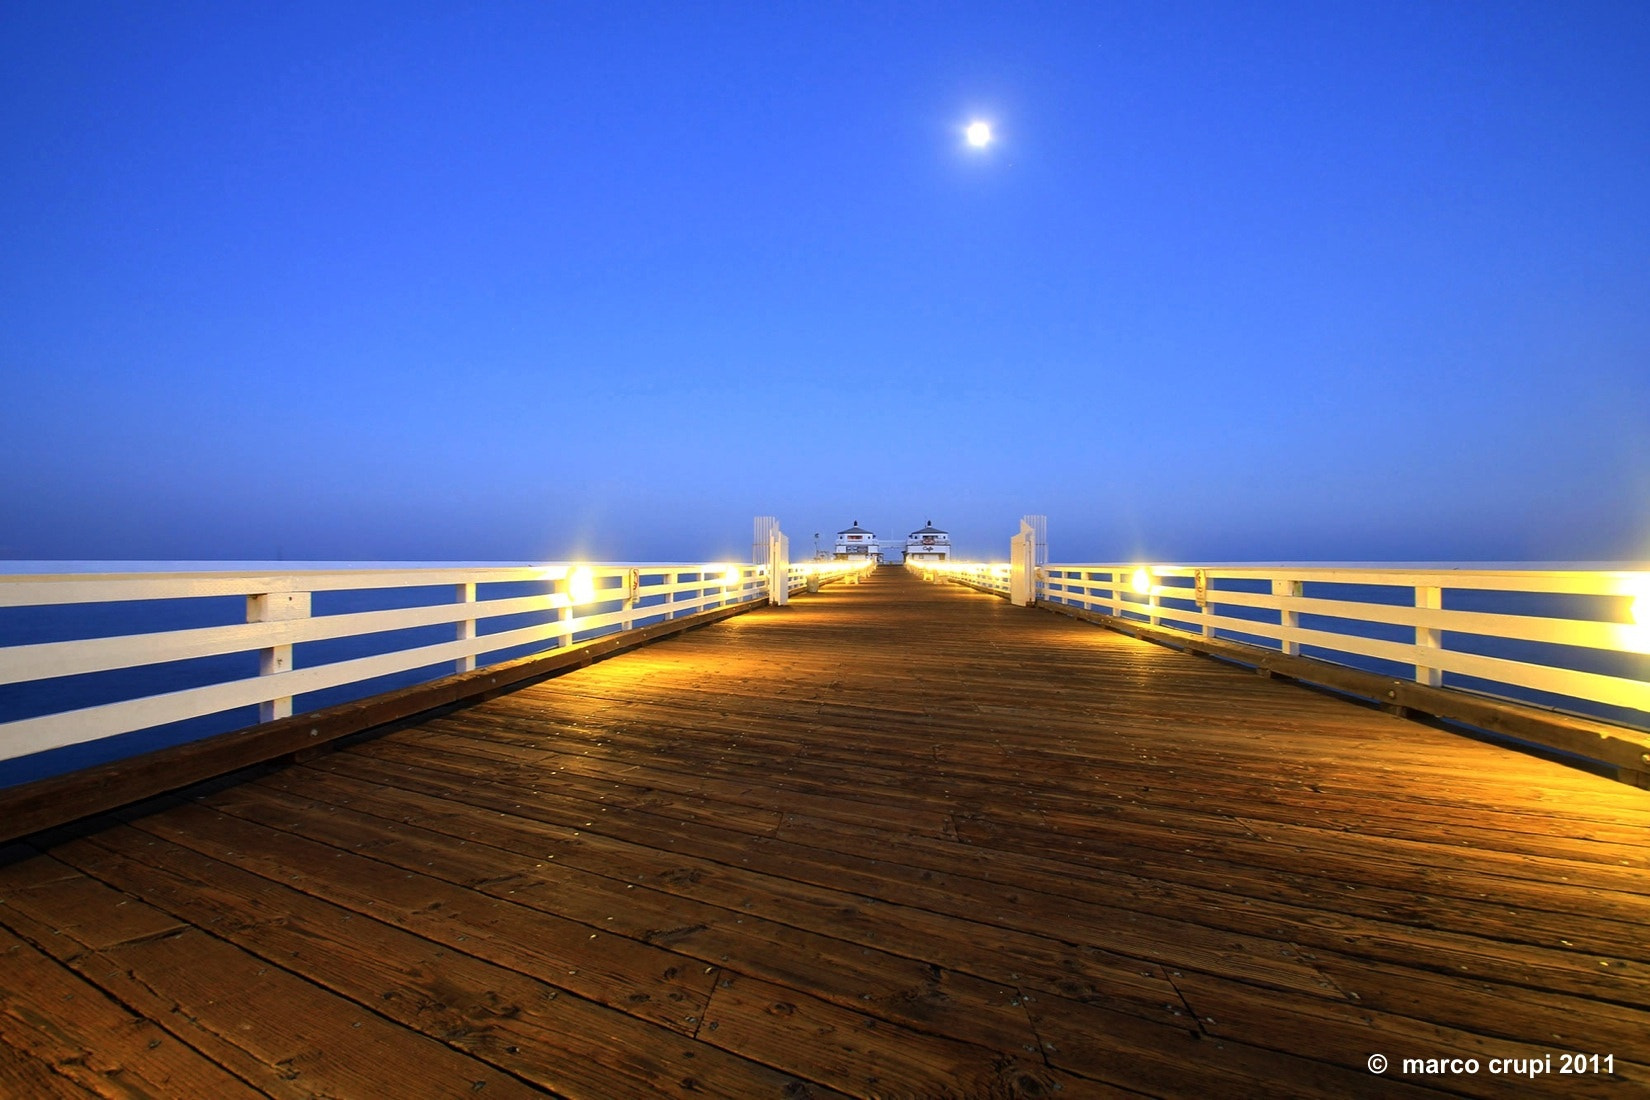 Photograph Moonlit Pier by Marco Crupi on 500px